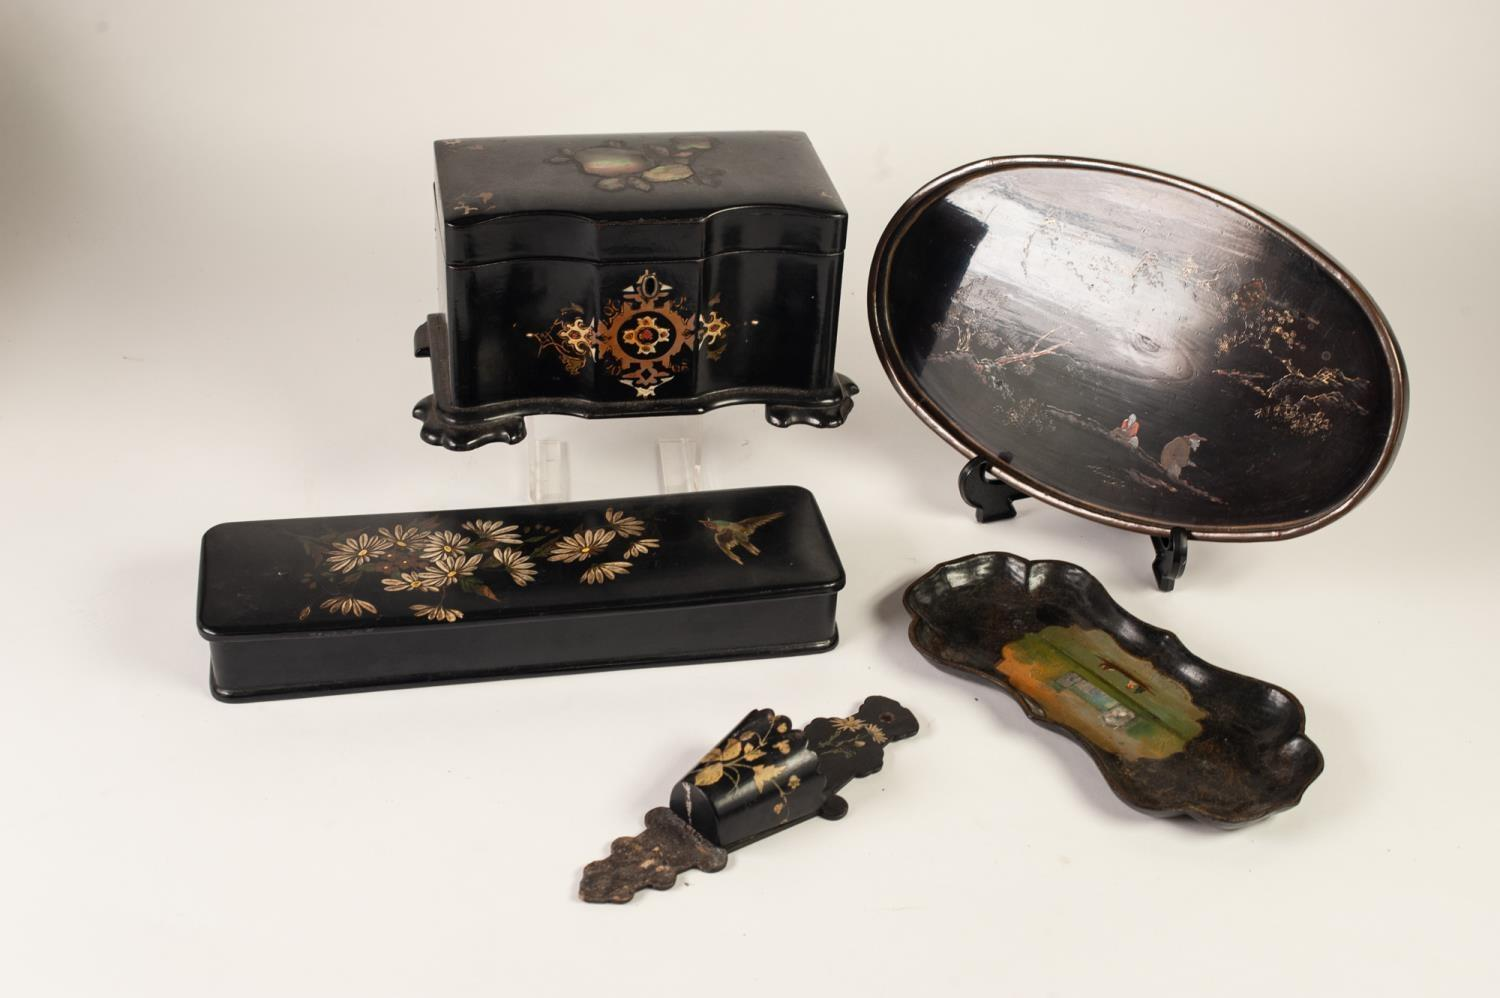 Lot 356 - FIVE PIECES OF NINETEENTH CENTURY PAINTED OR INLAID BLACK LACQUERED WARE, comprising: SERPENTINE